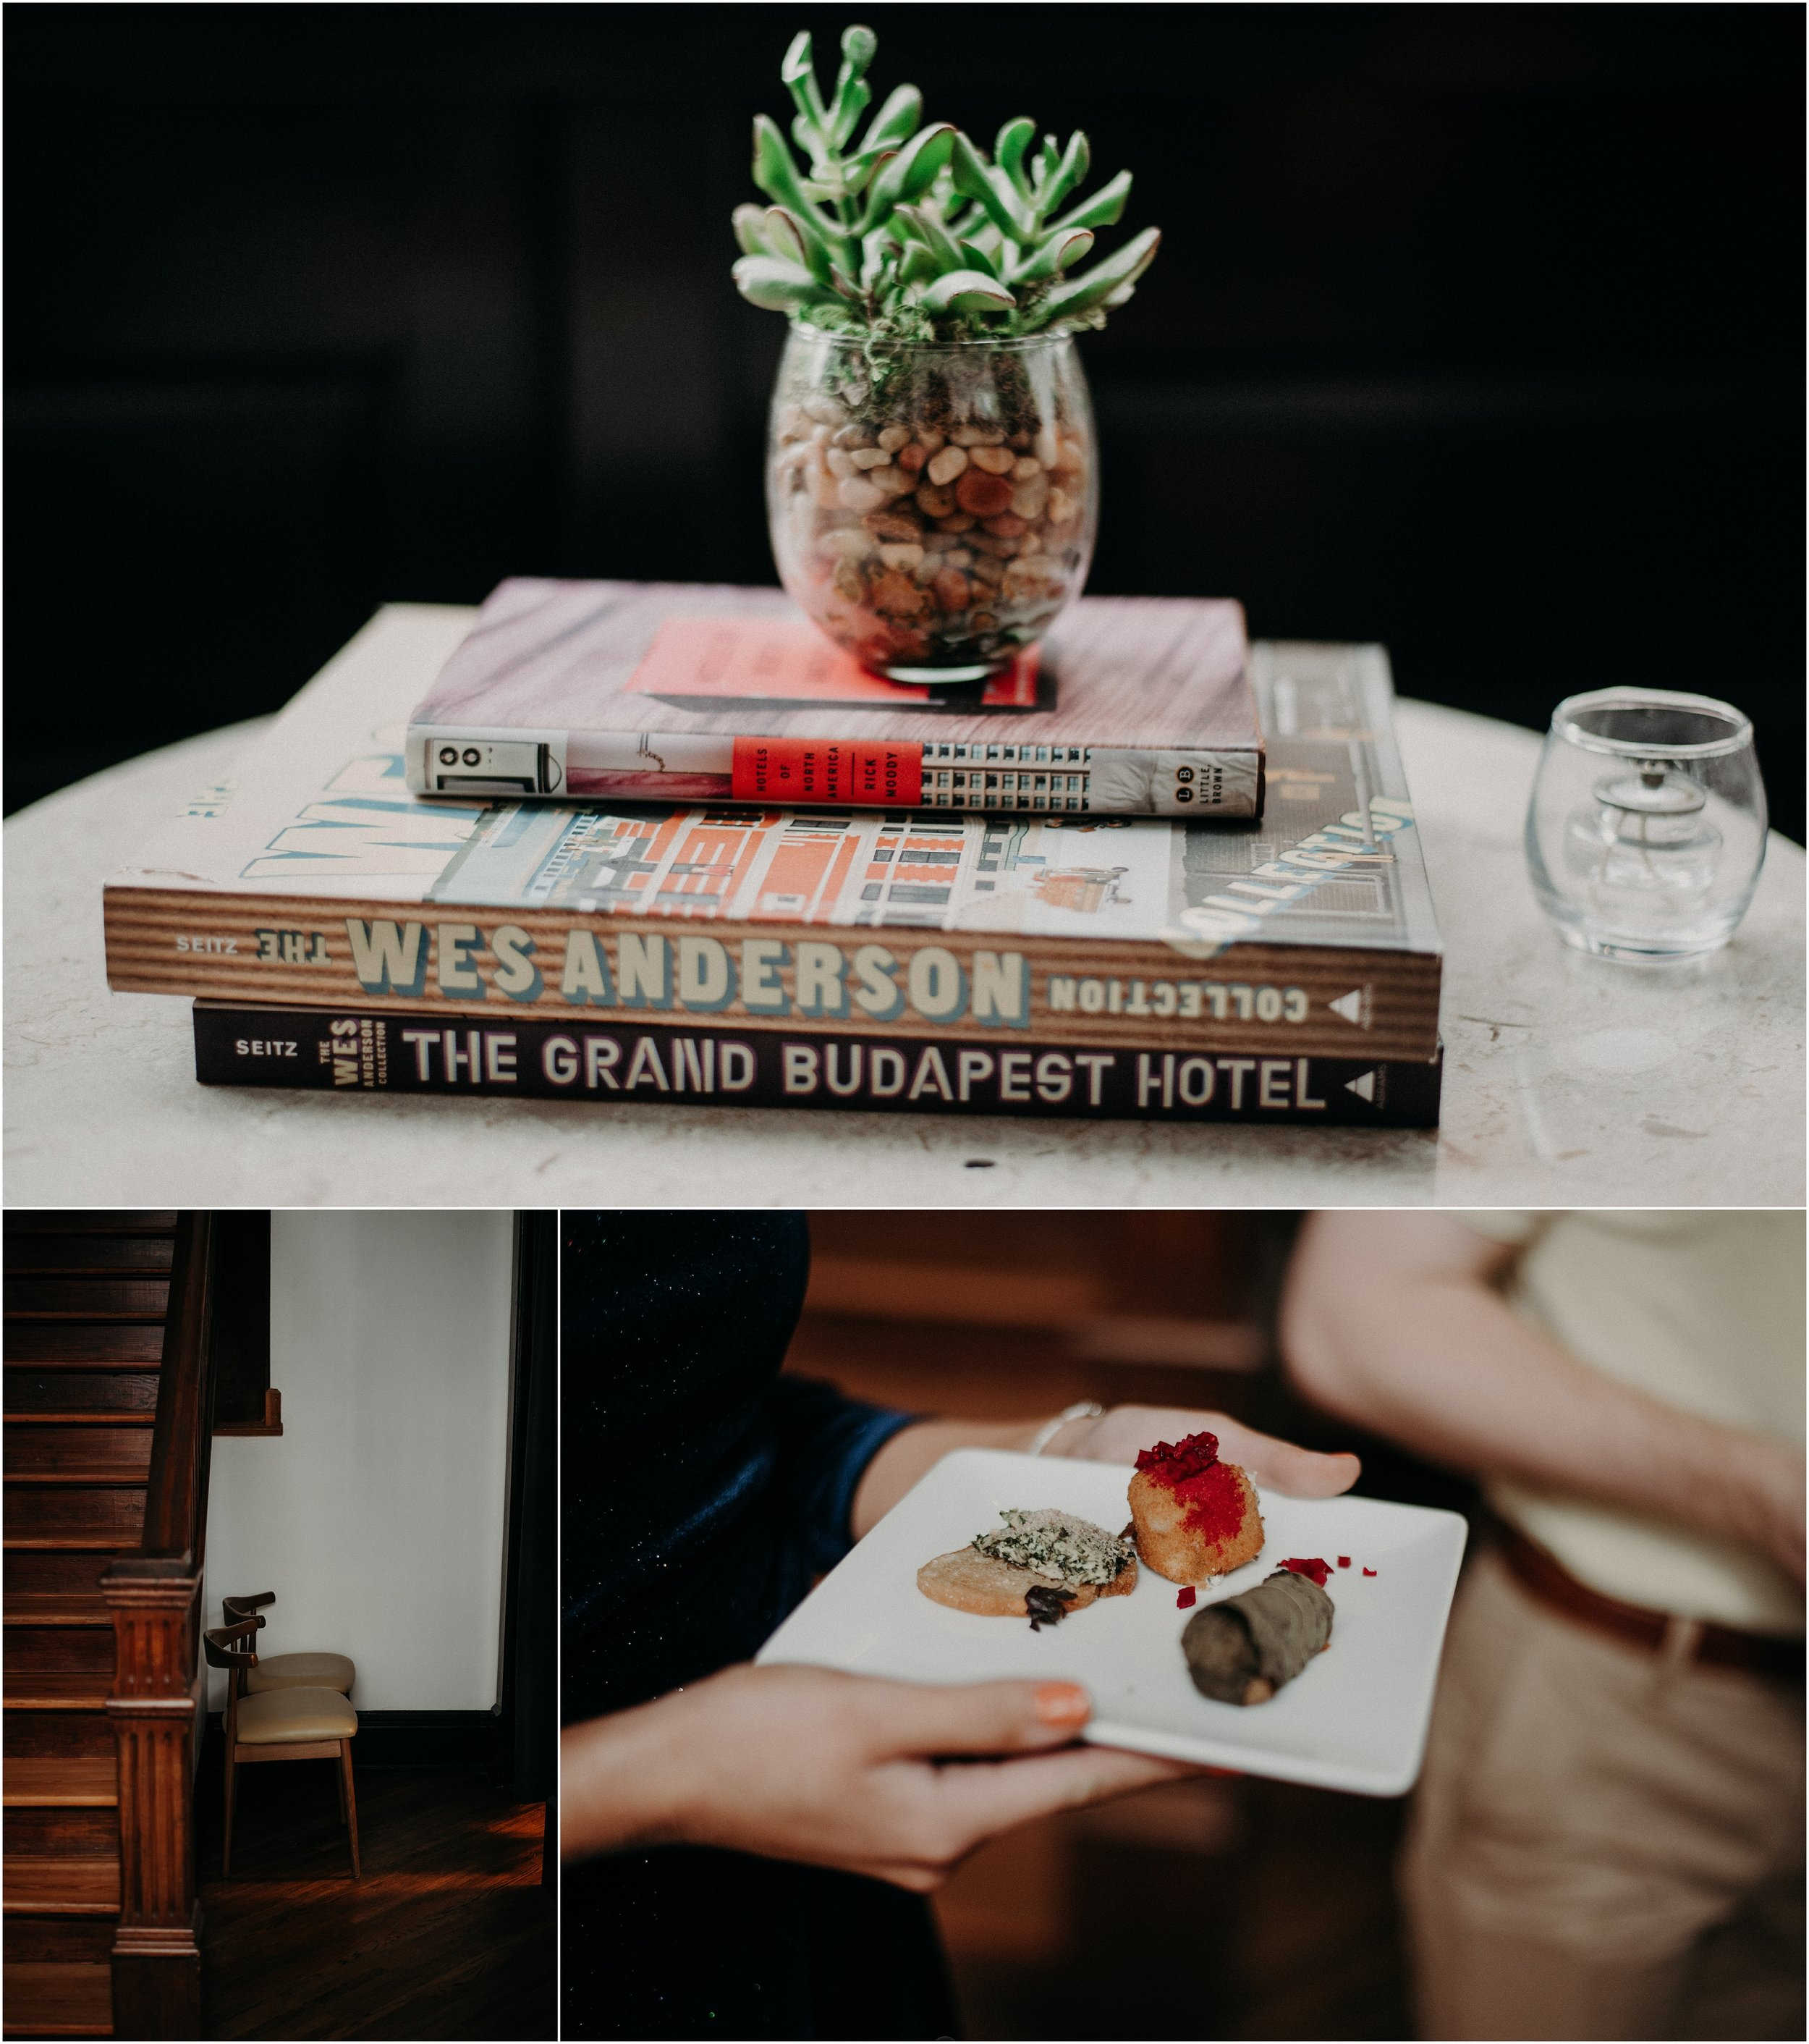 Wes Anderson inspired decor at the mid-century modern Dwell Hotel